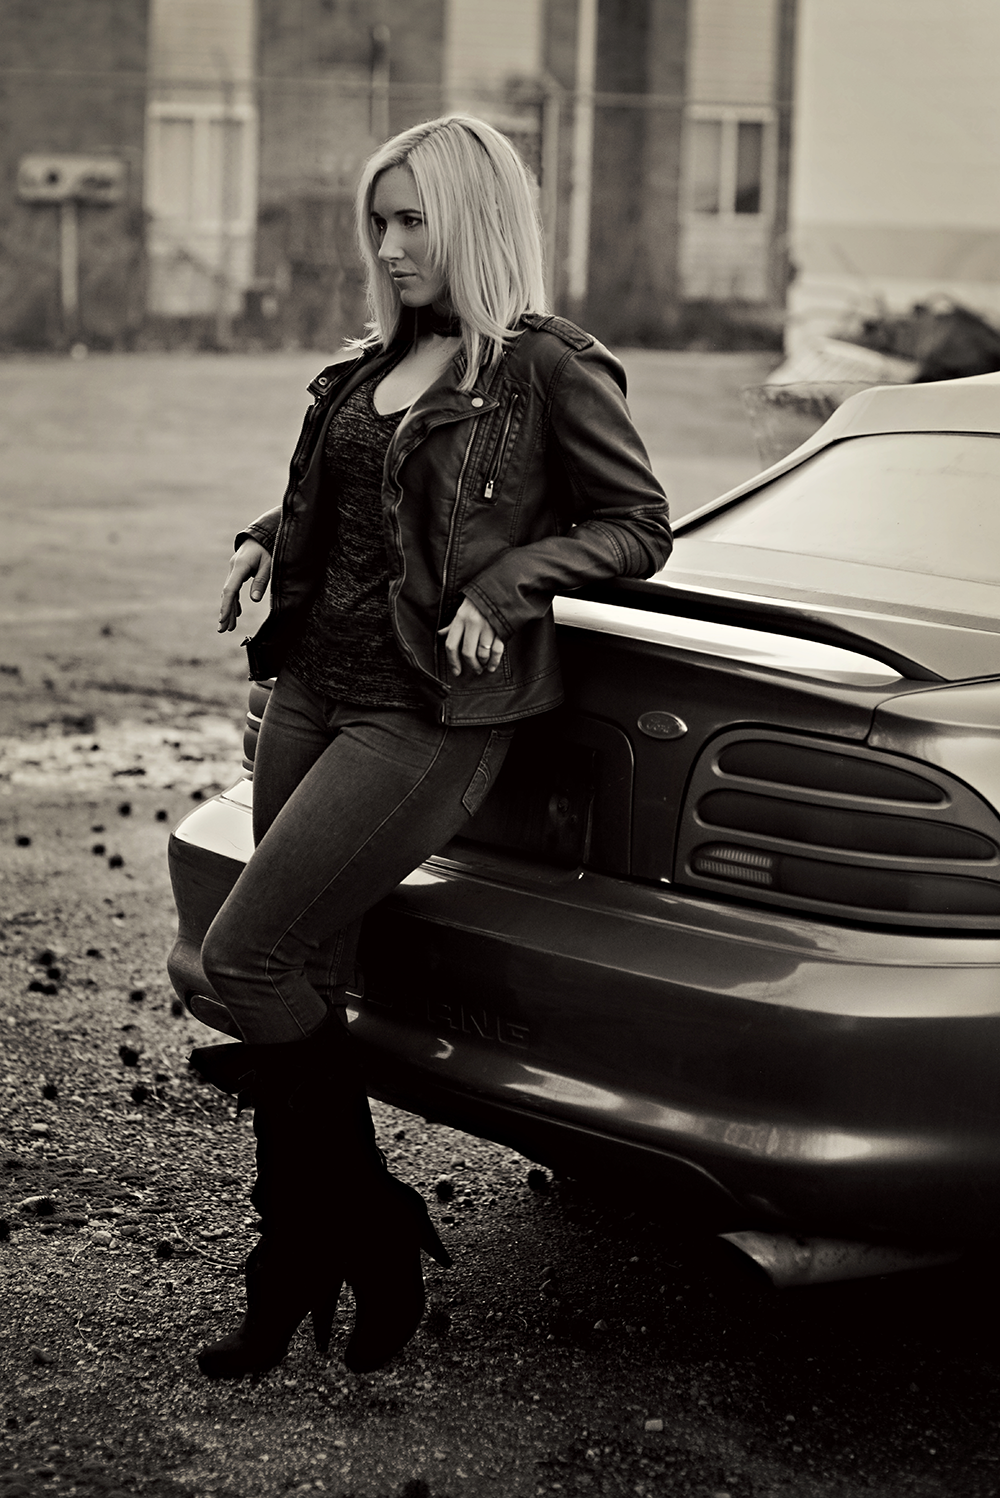 a girl and her Ford Mustang car